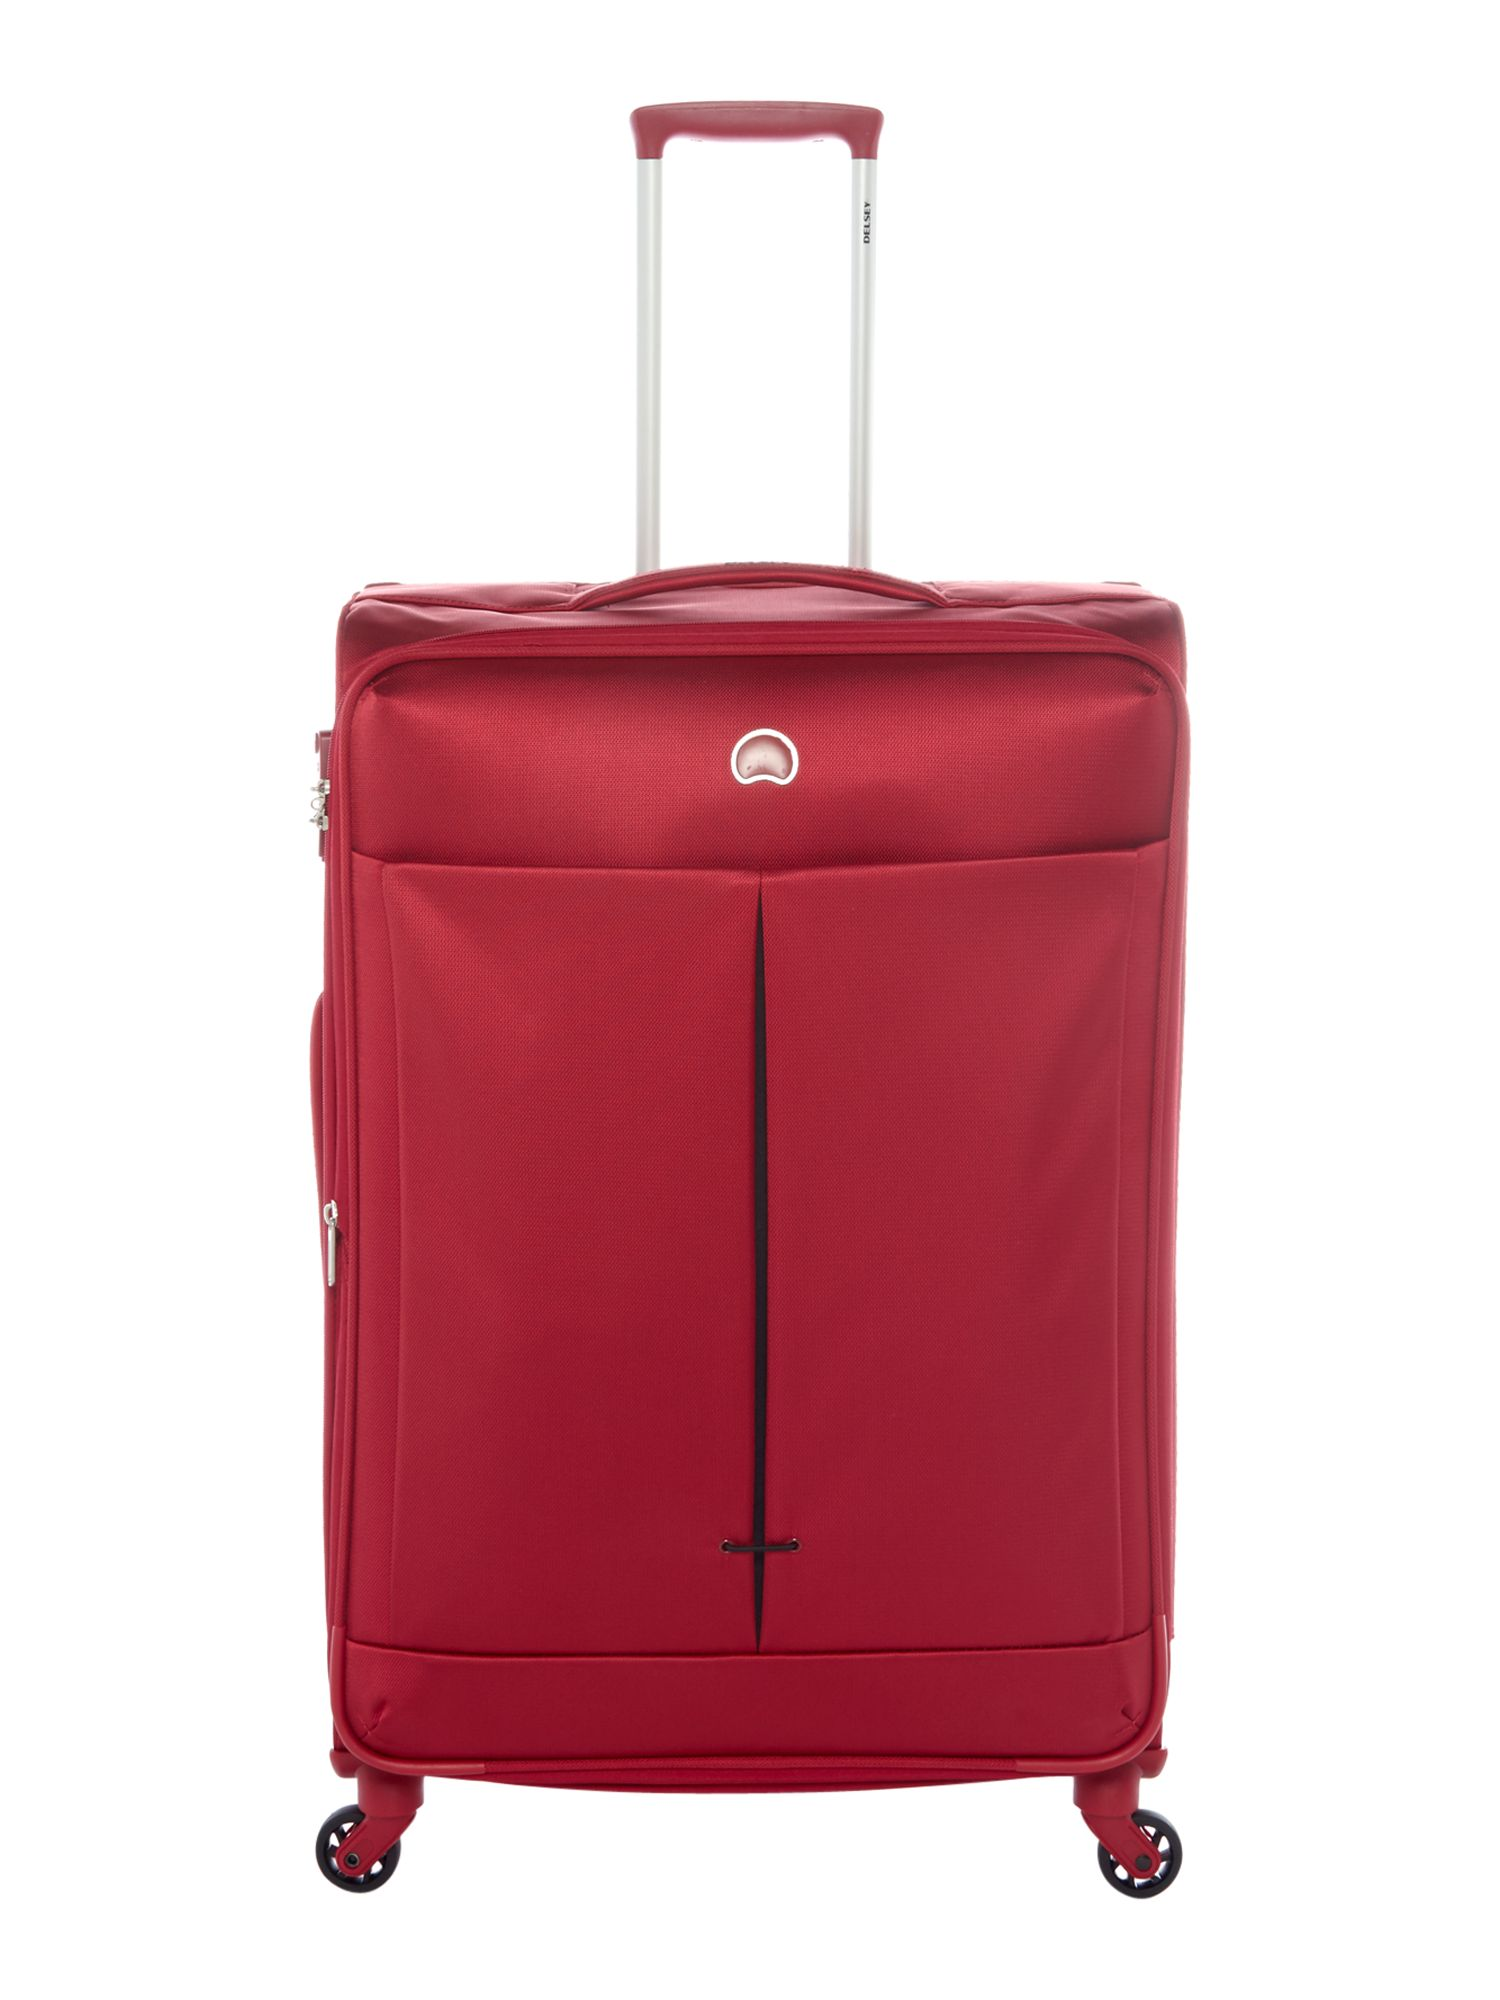 Delsey Air Adventure Large 78cm Red Suitcase, Red